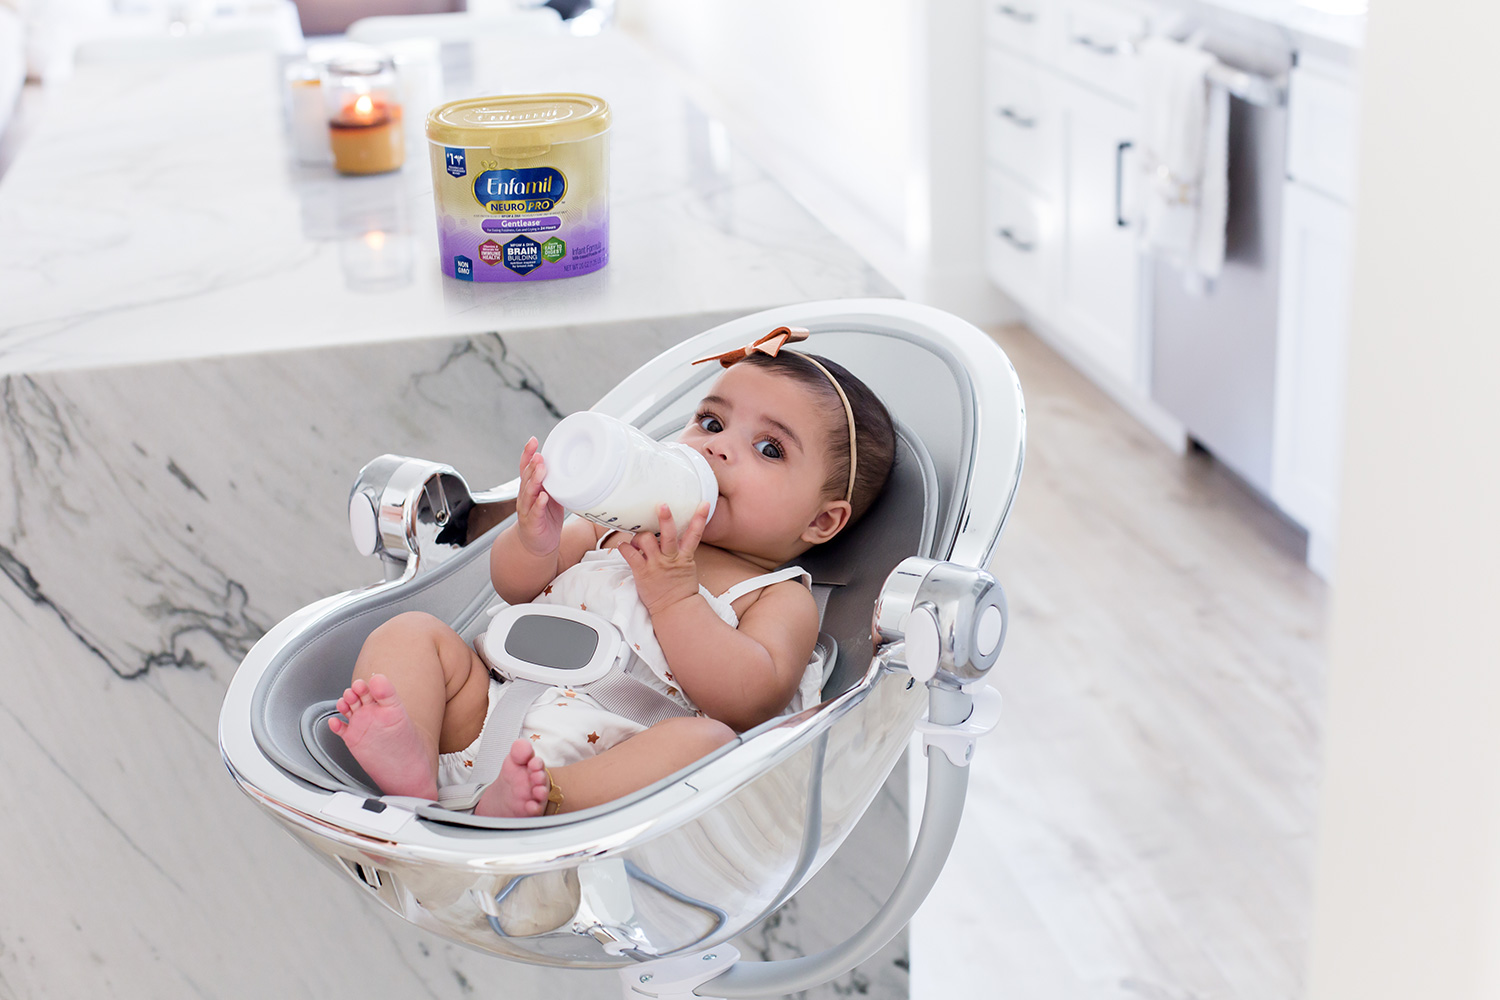 Baby holding her own bottle and drinking Enfamil formula